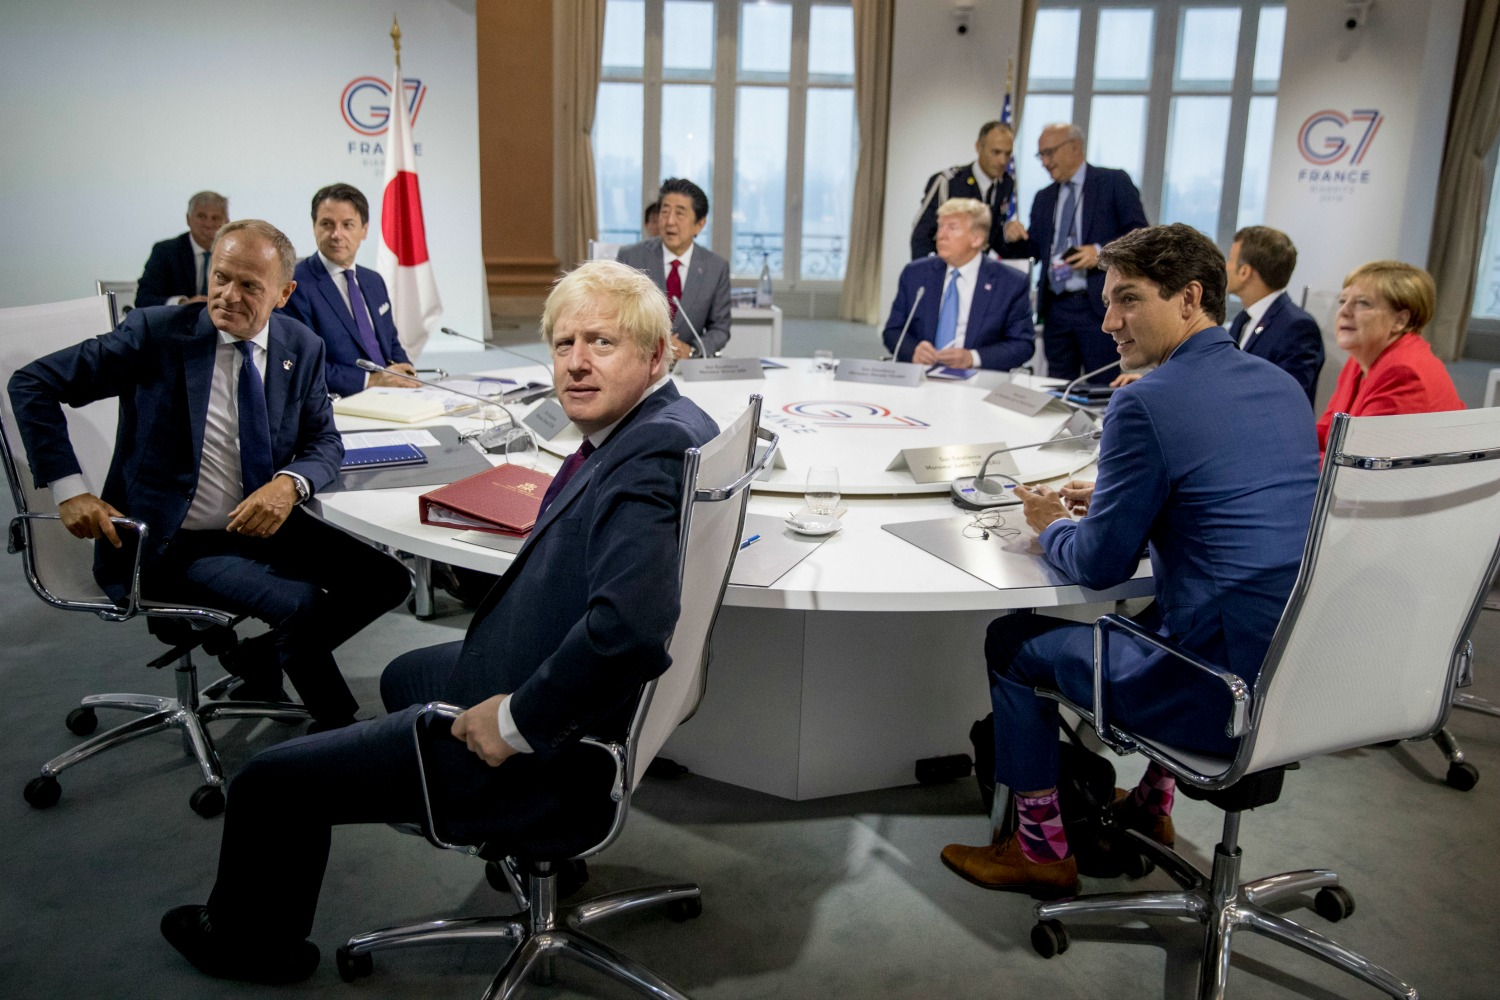 Boris Johnson with other world leaders at the G-7 summit in Biarritz, France.